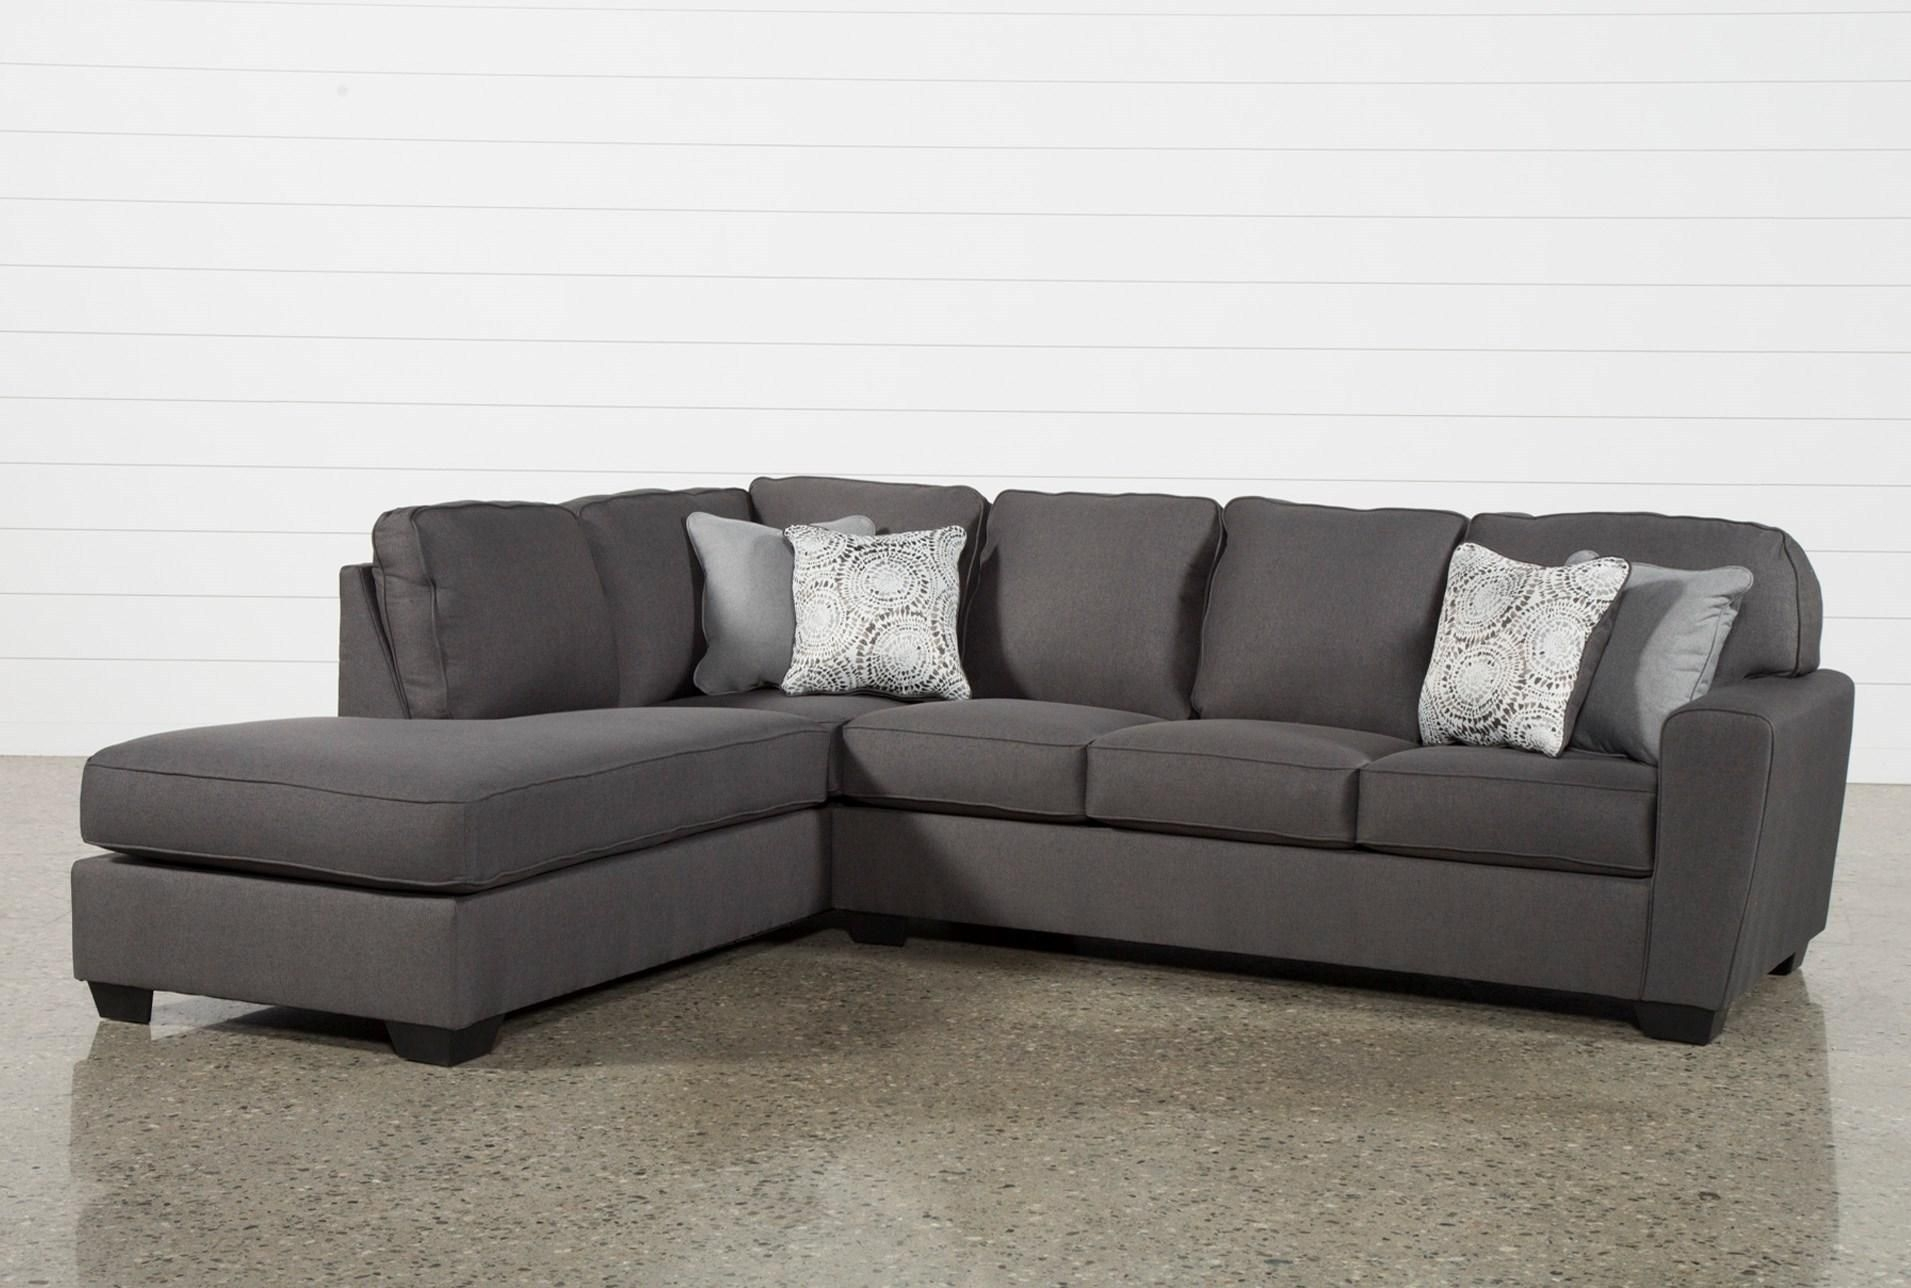 Mcdade Graphite 2 Piece Sectional W/laf Chaise | Graphite, Living In Kerri 2 Piece Sectionals With Laf Chaise (View 5 of 25)